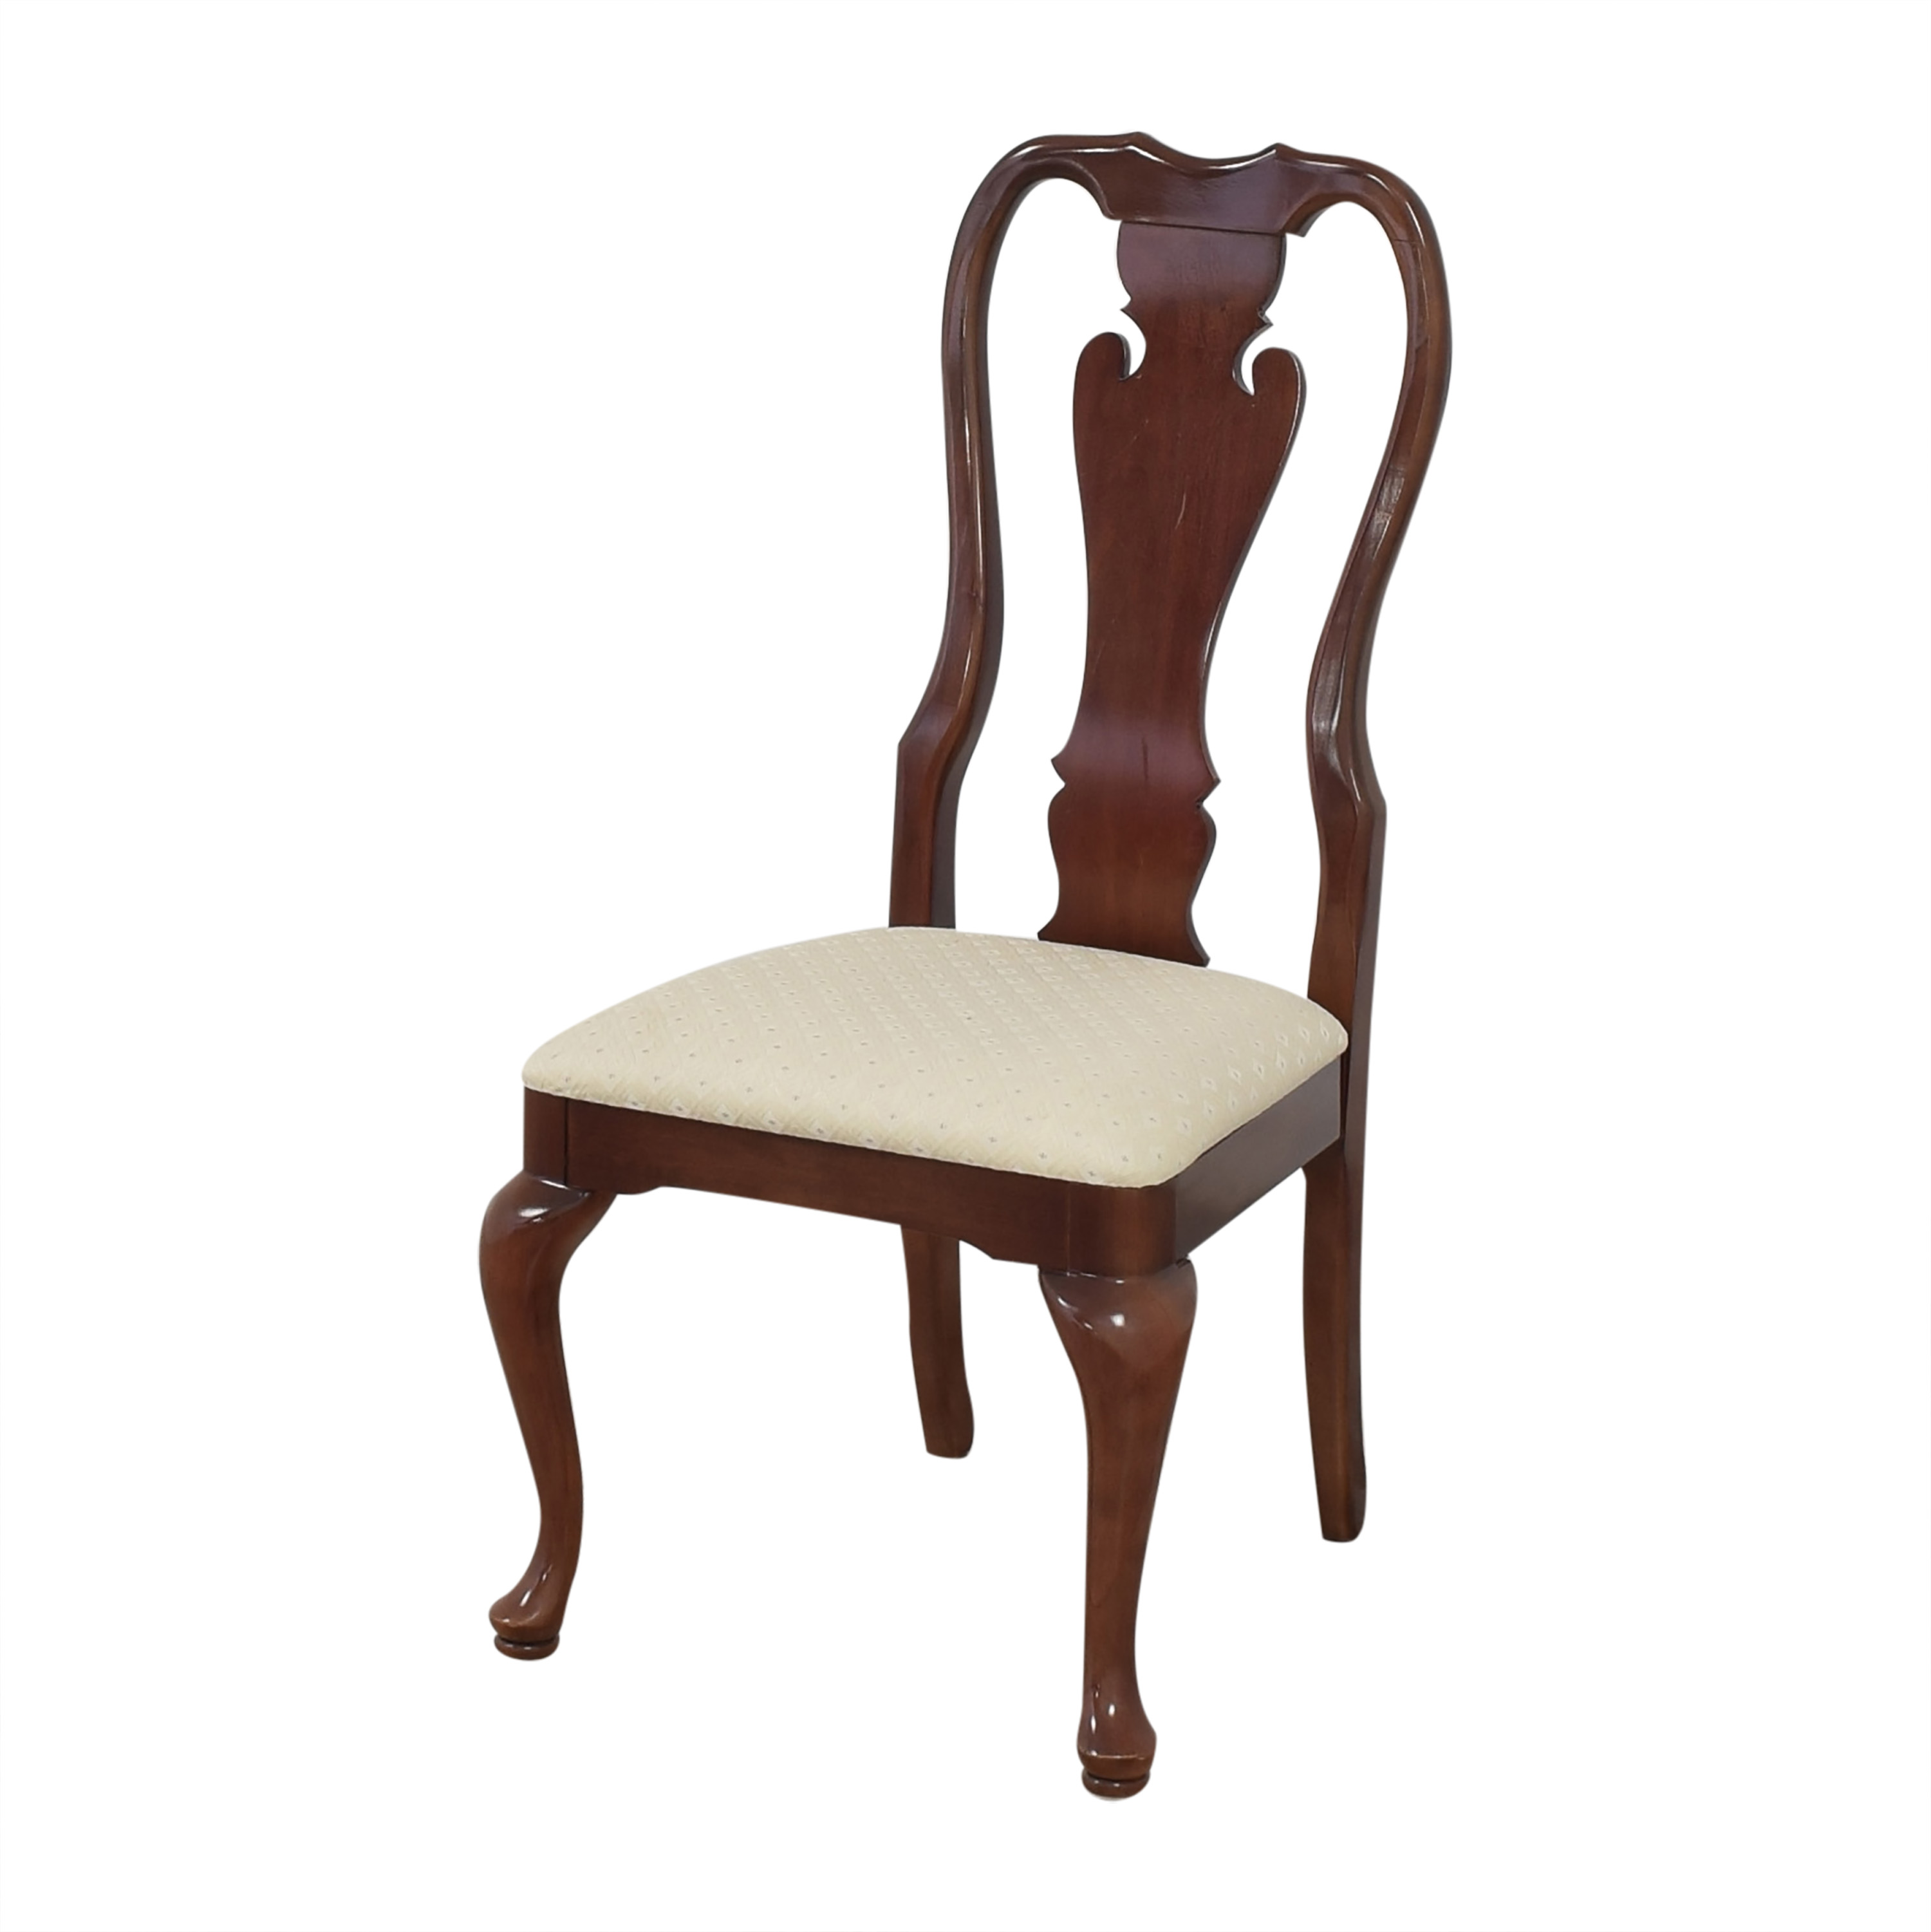 Thomasville Thomasville Queen Anne Dining Chairs for sale